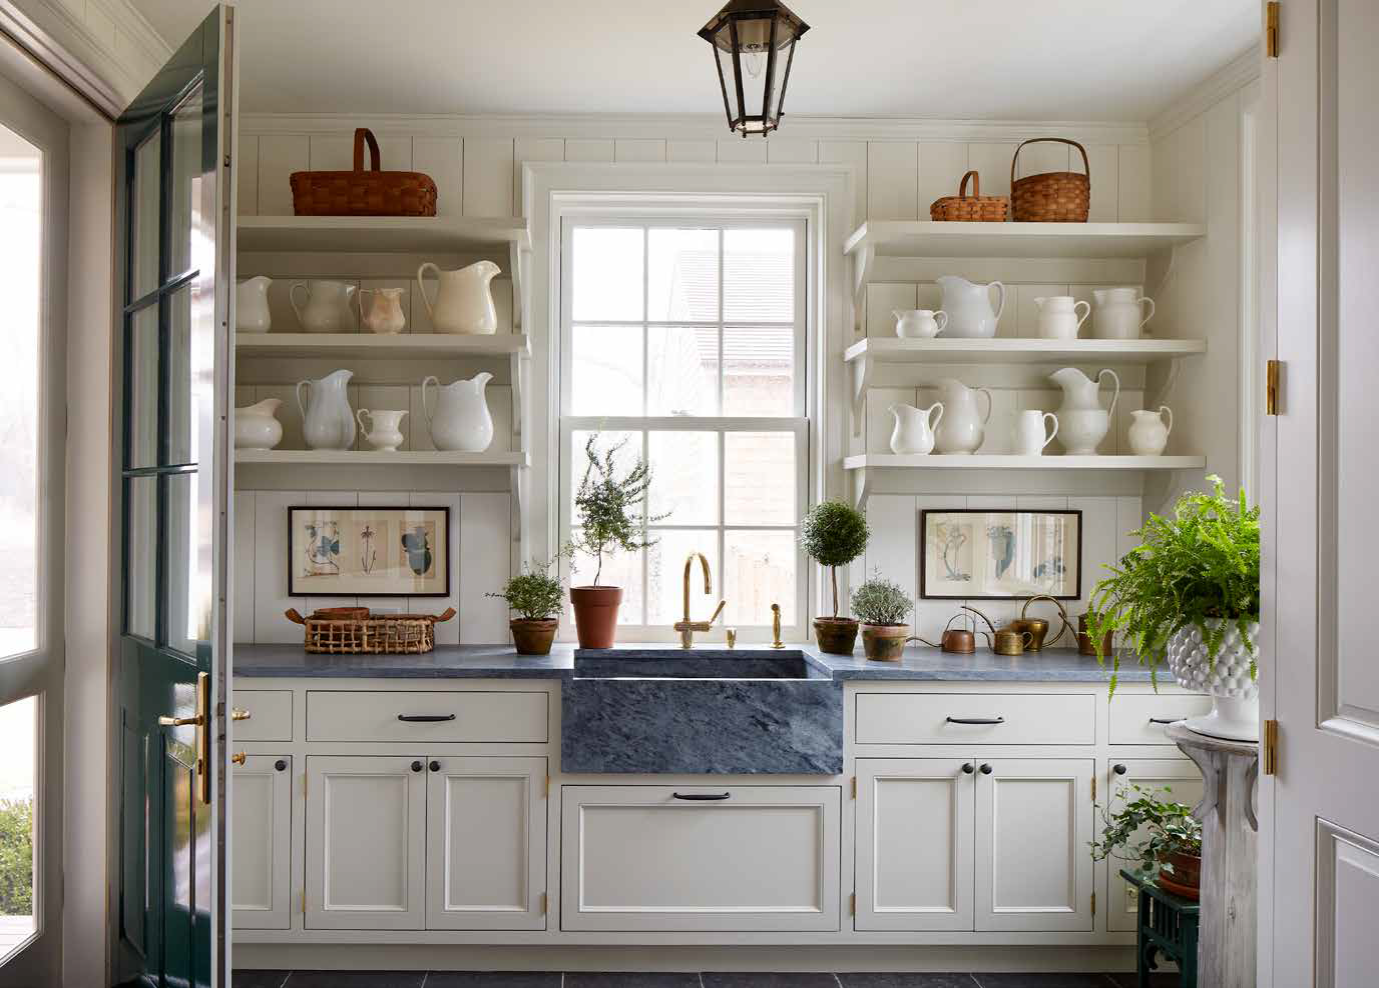 P. 196-197 Open shelves and ample counter space permit the display of three collections in this generously scaled mudroom: earthenware pitchers, brass watering cans, and wicker baskets. Photo Credit: William Abramowicz/Art + Commerce